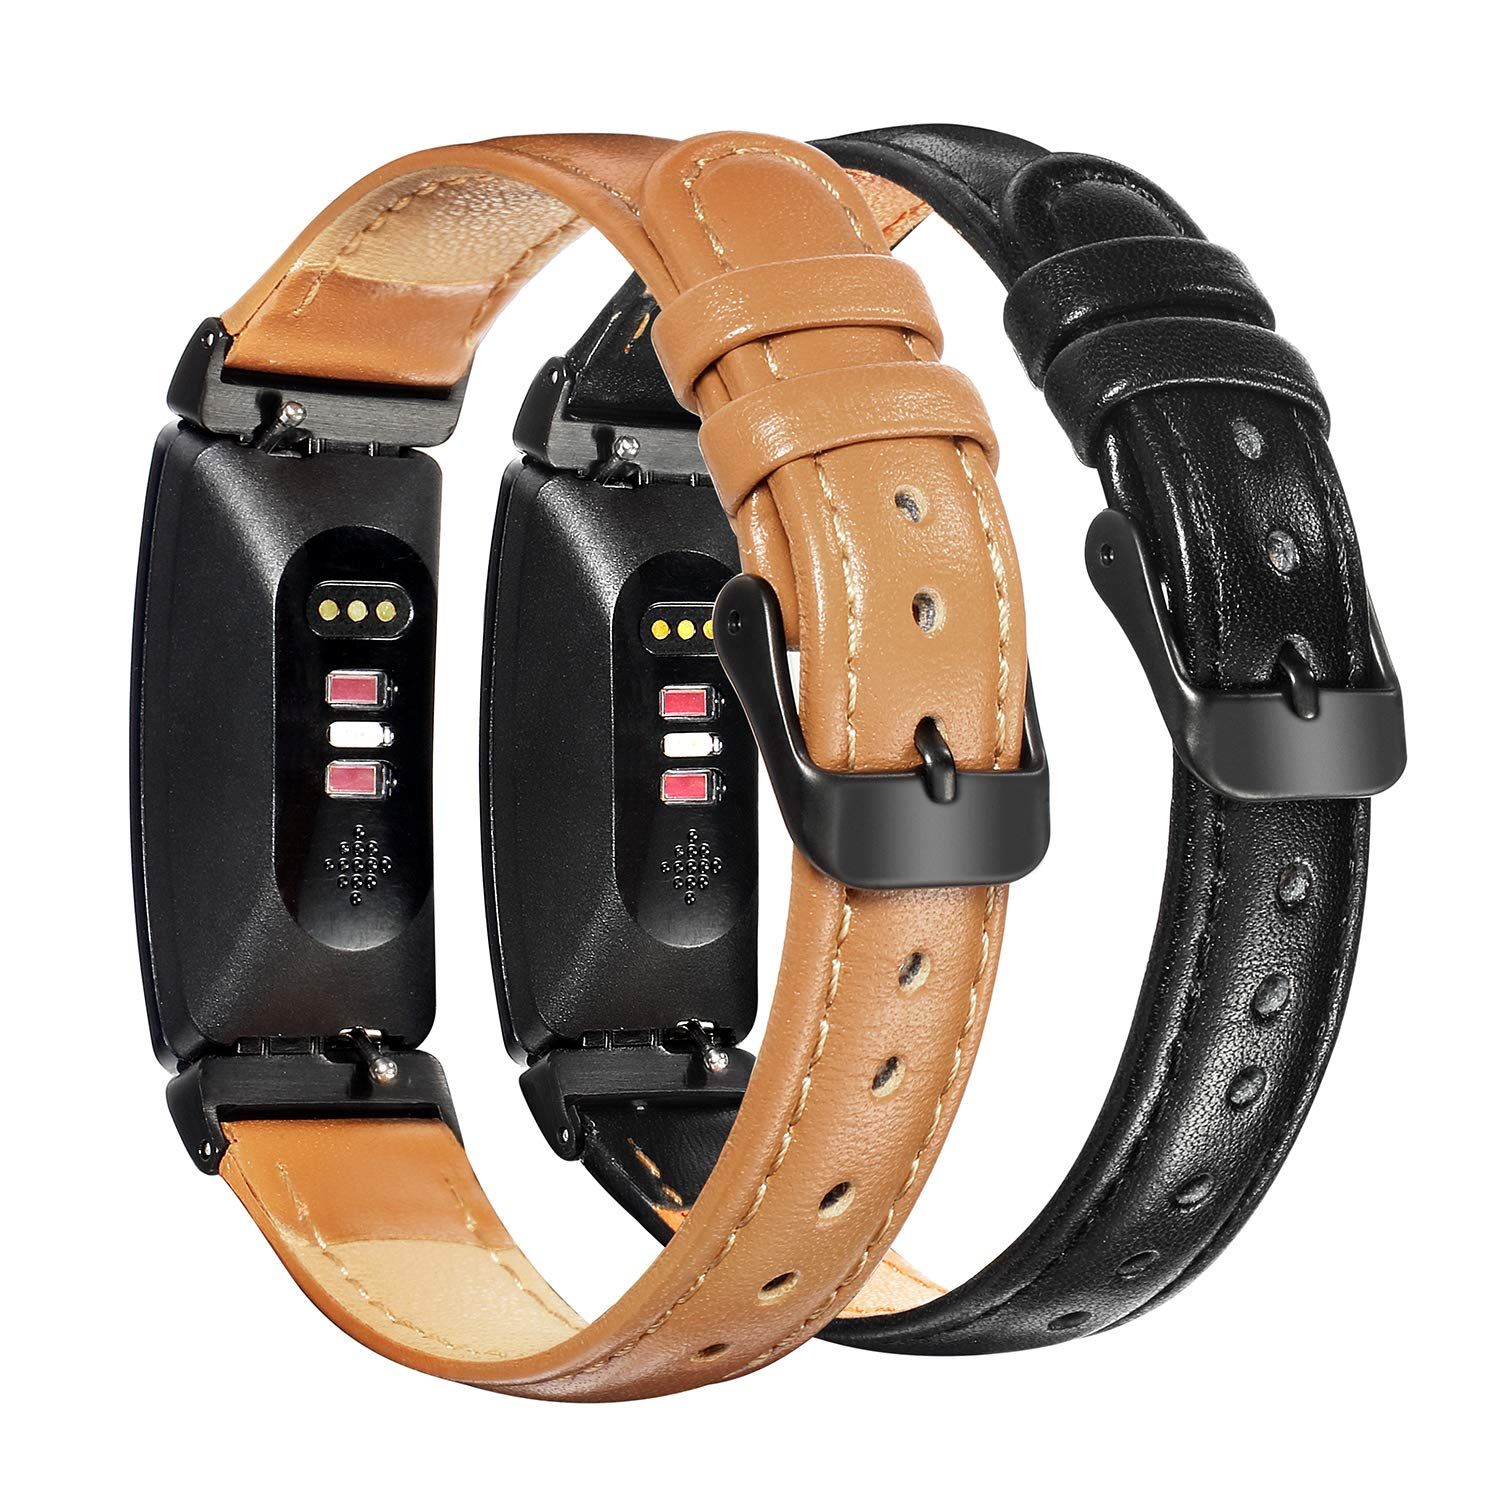 Bands for Fitbit Inspire HR and Inspire, 2 Pack Softer Genuine Leather Watch Straps with Black Buckle, Camel + Black (Camel + Black) by Loxan